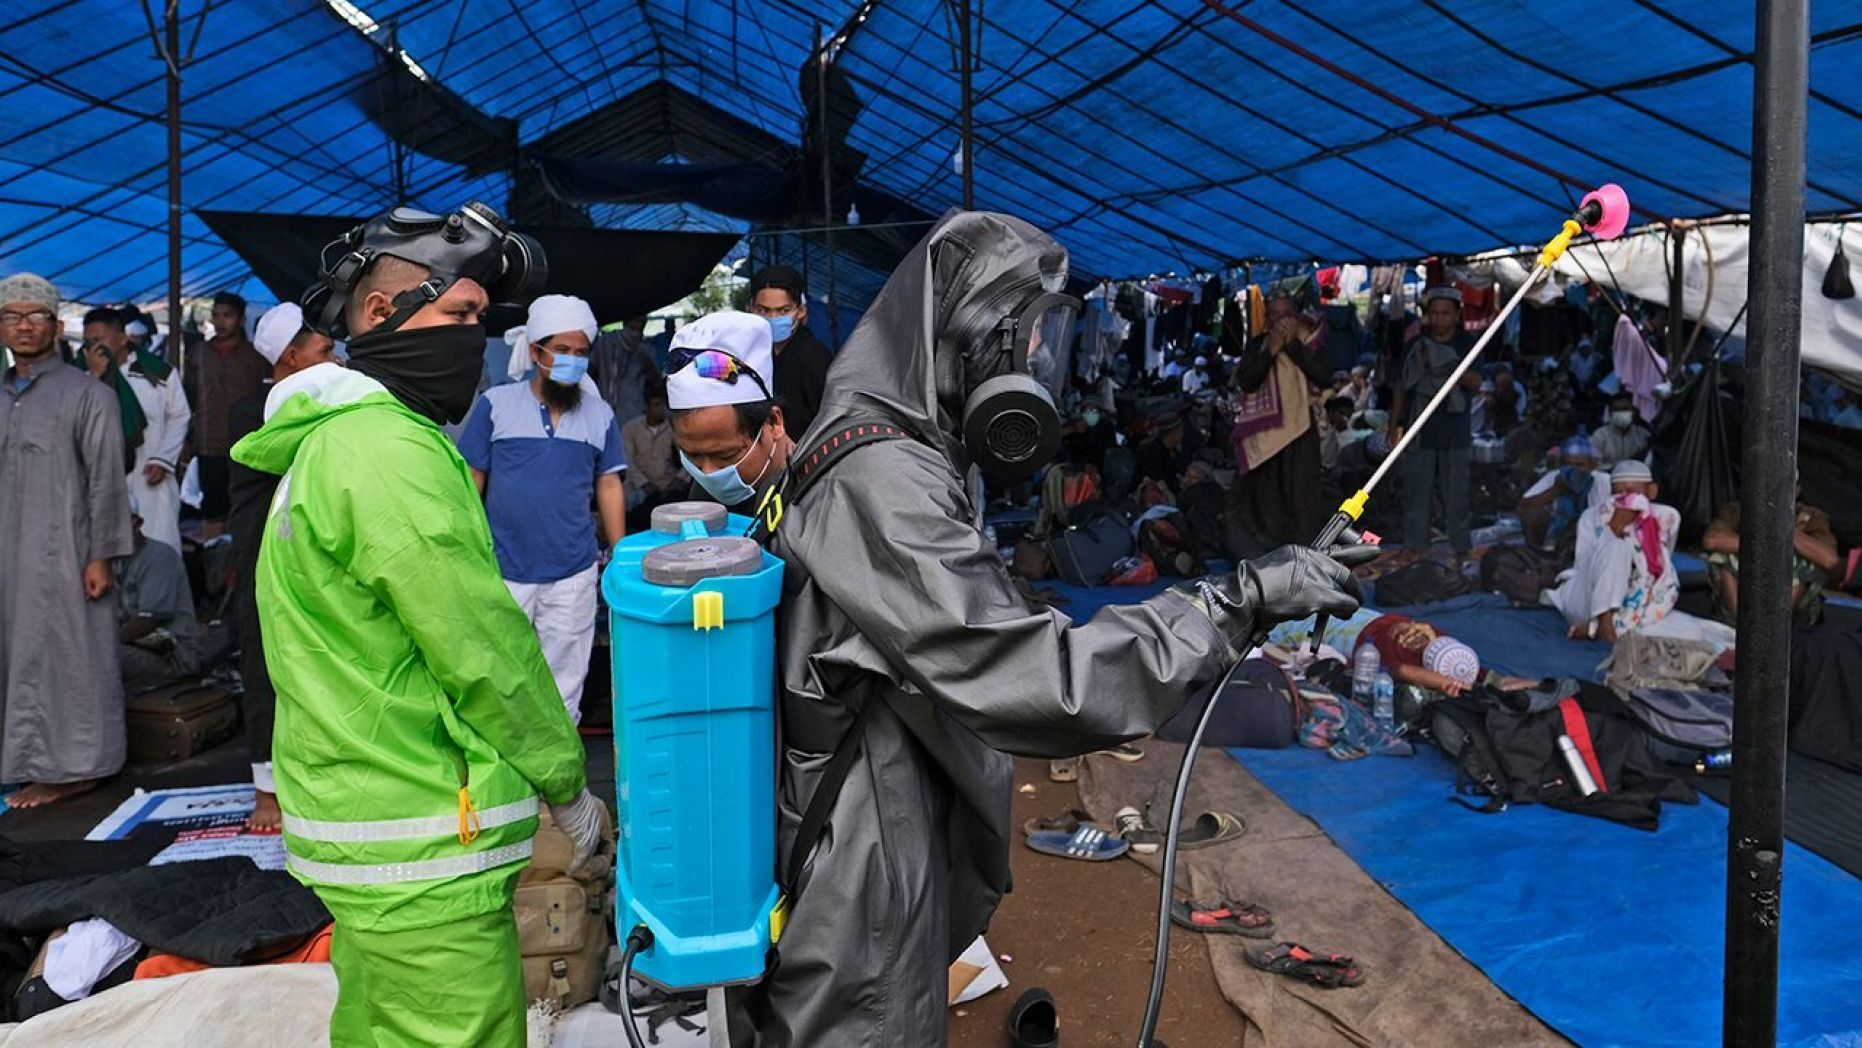 Around 10,000 Muslims, Christians Gather for Events in Indonesia During Coronavirus Outbreak